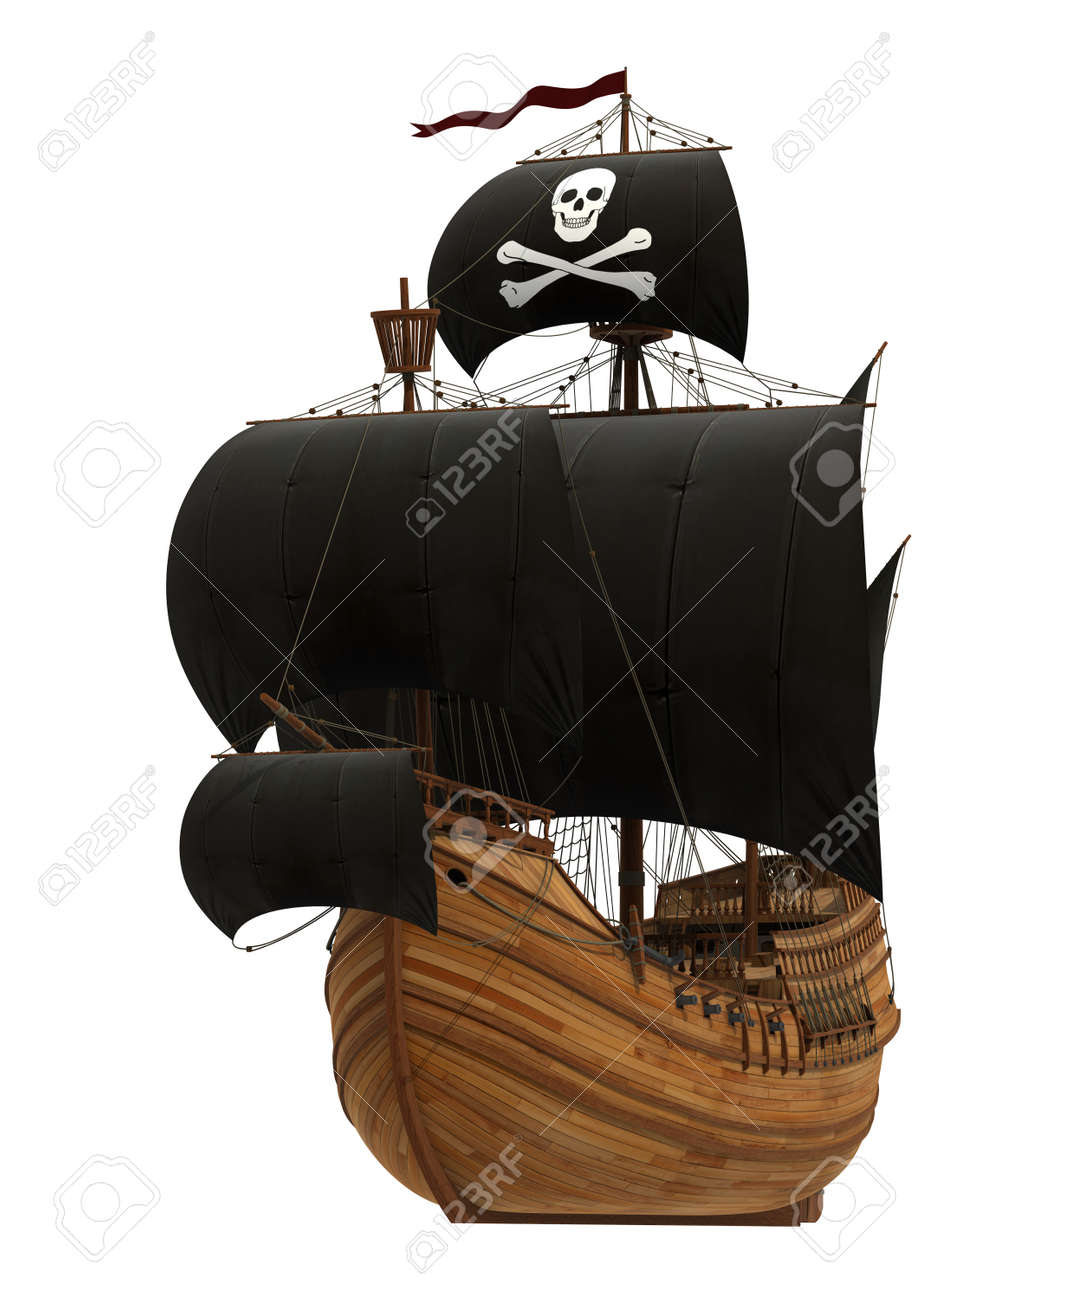 Pirate Ship On White Background. 3D Model. - 40040216